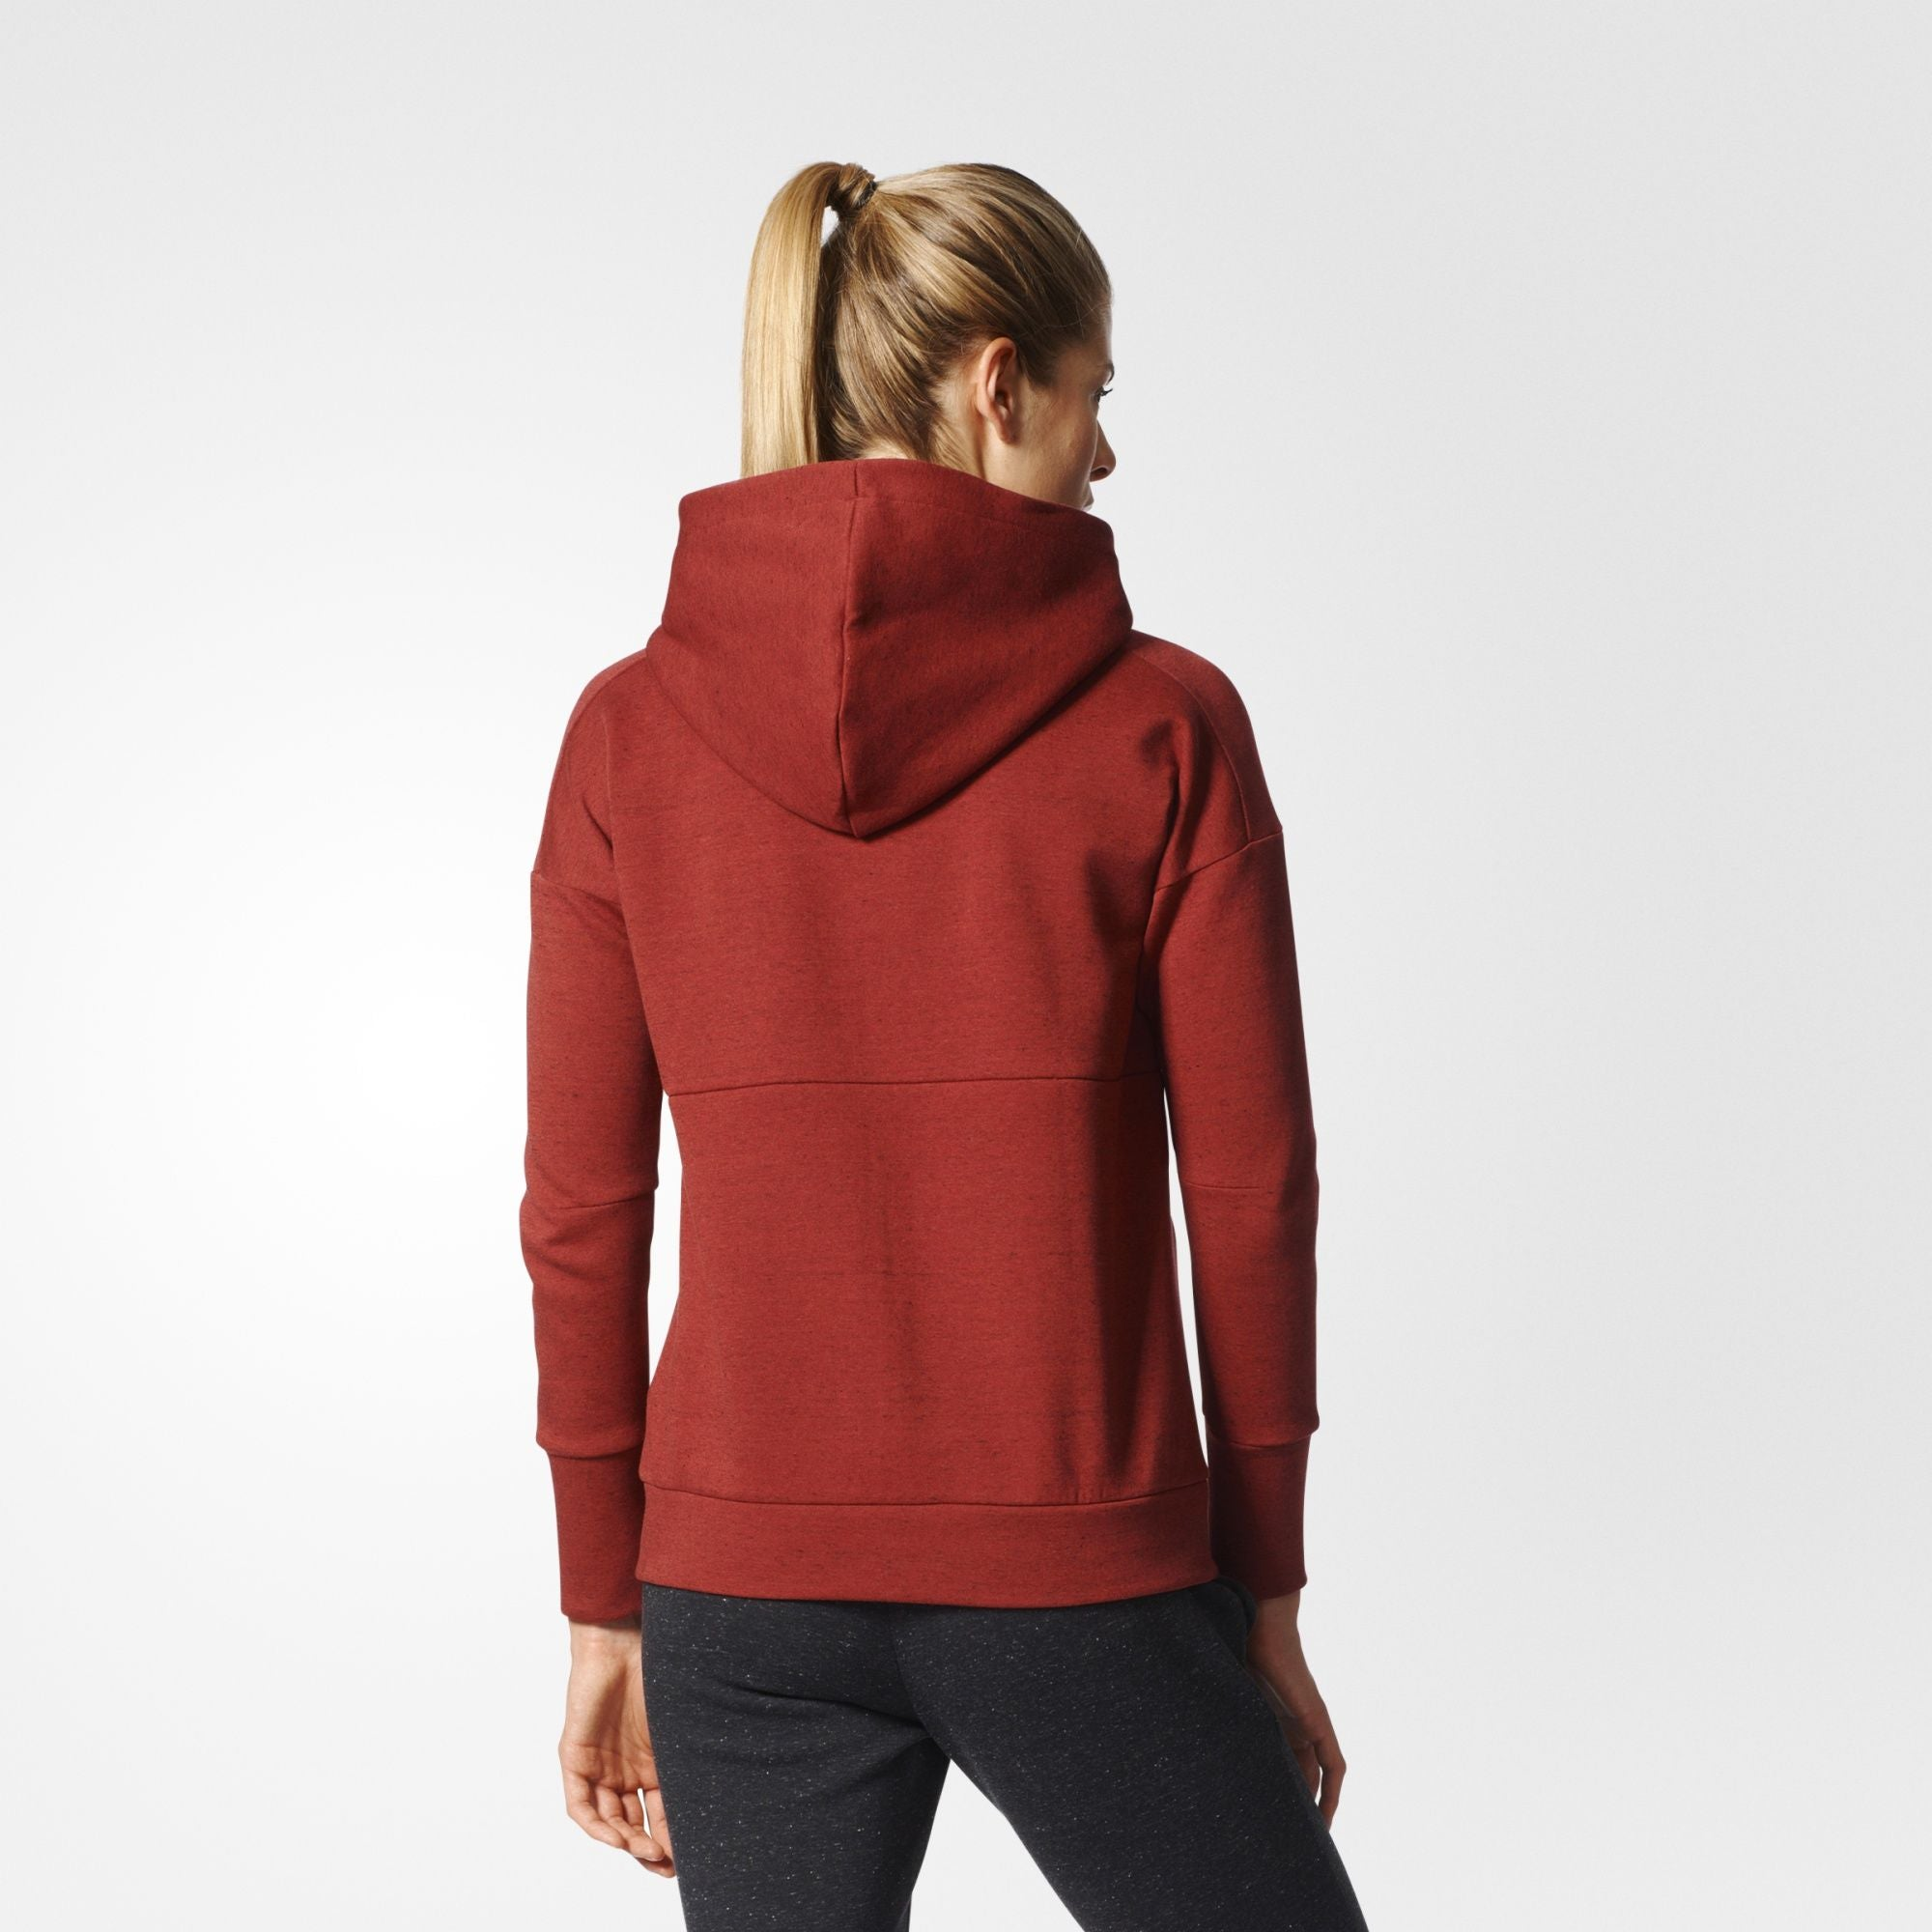 ccb68a01c440 Stadium Hoodie Womens Athletics Adidas Hoodies   Track Tops Mystery Red  S97088